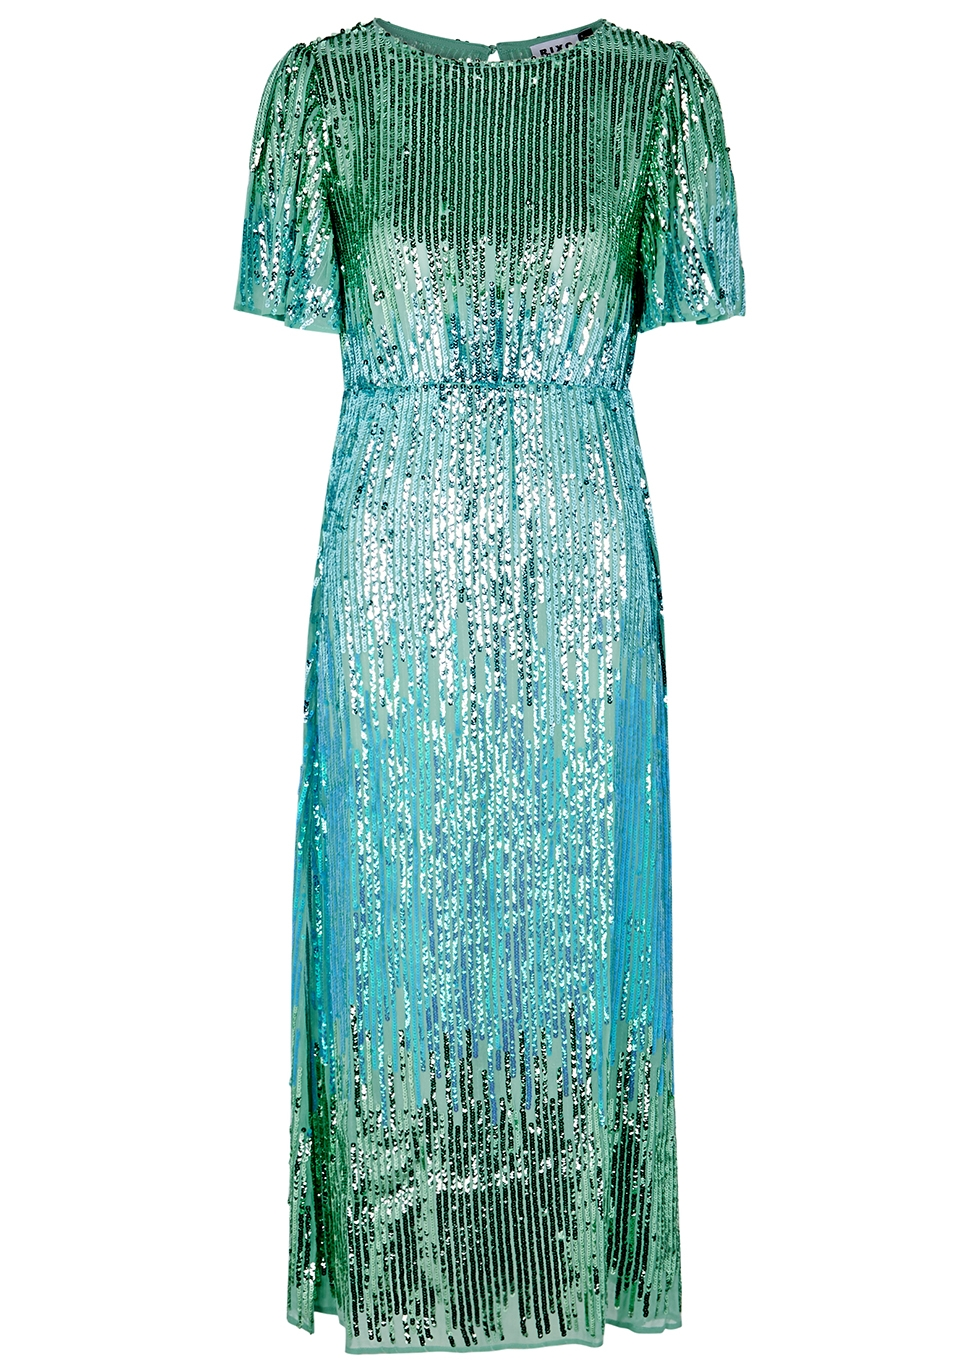 Venus sequinned chiffon midi dress